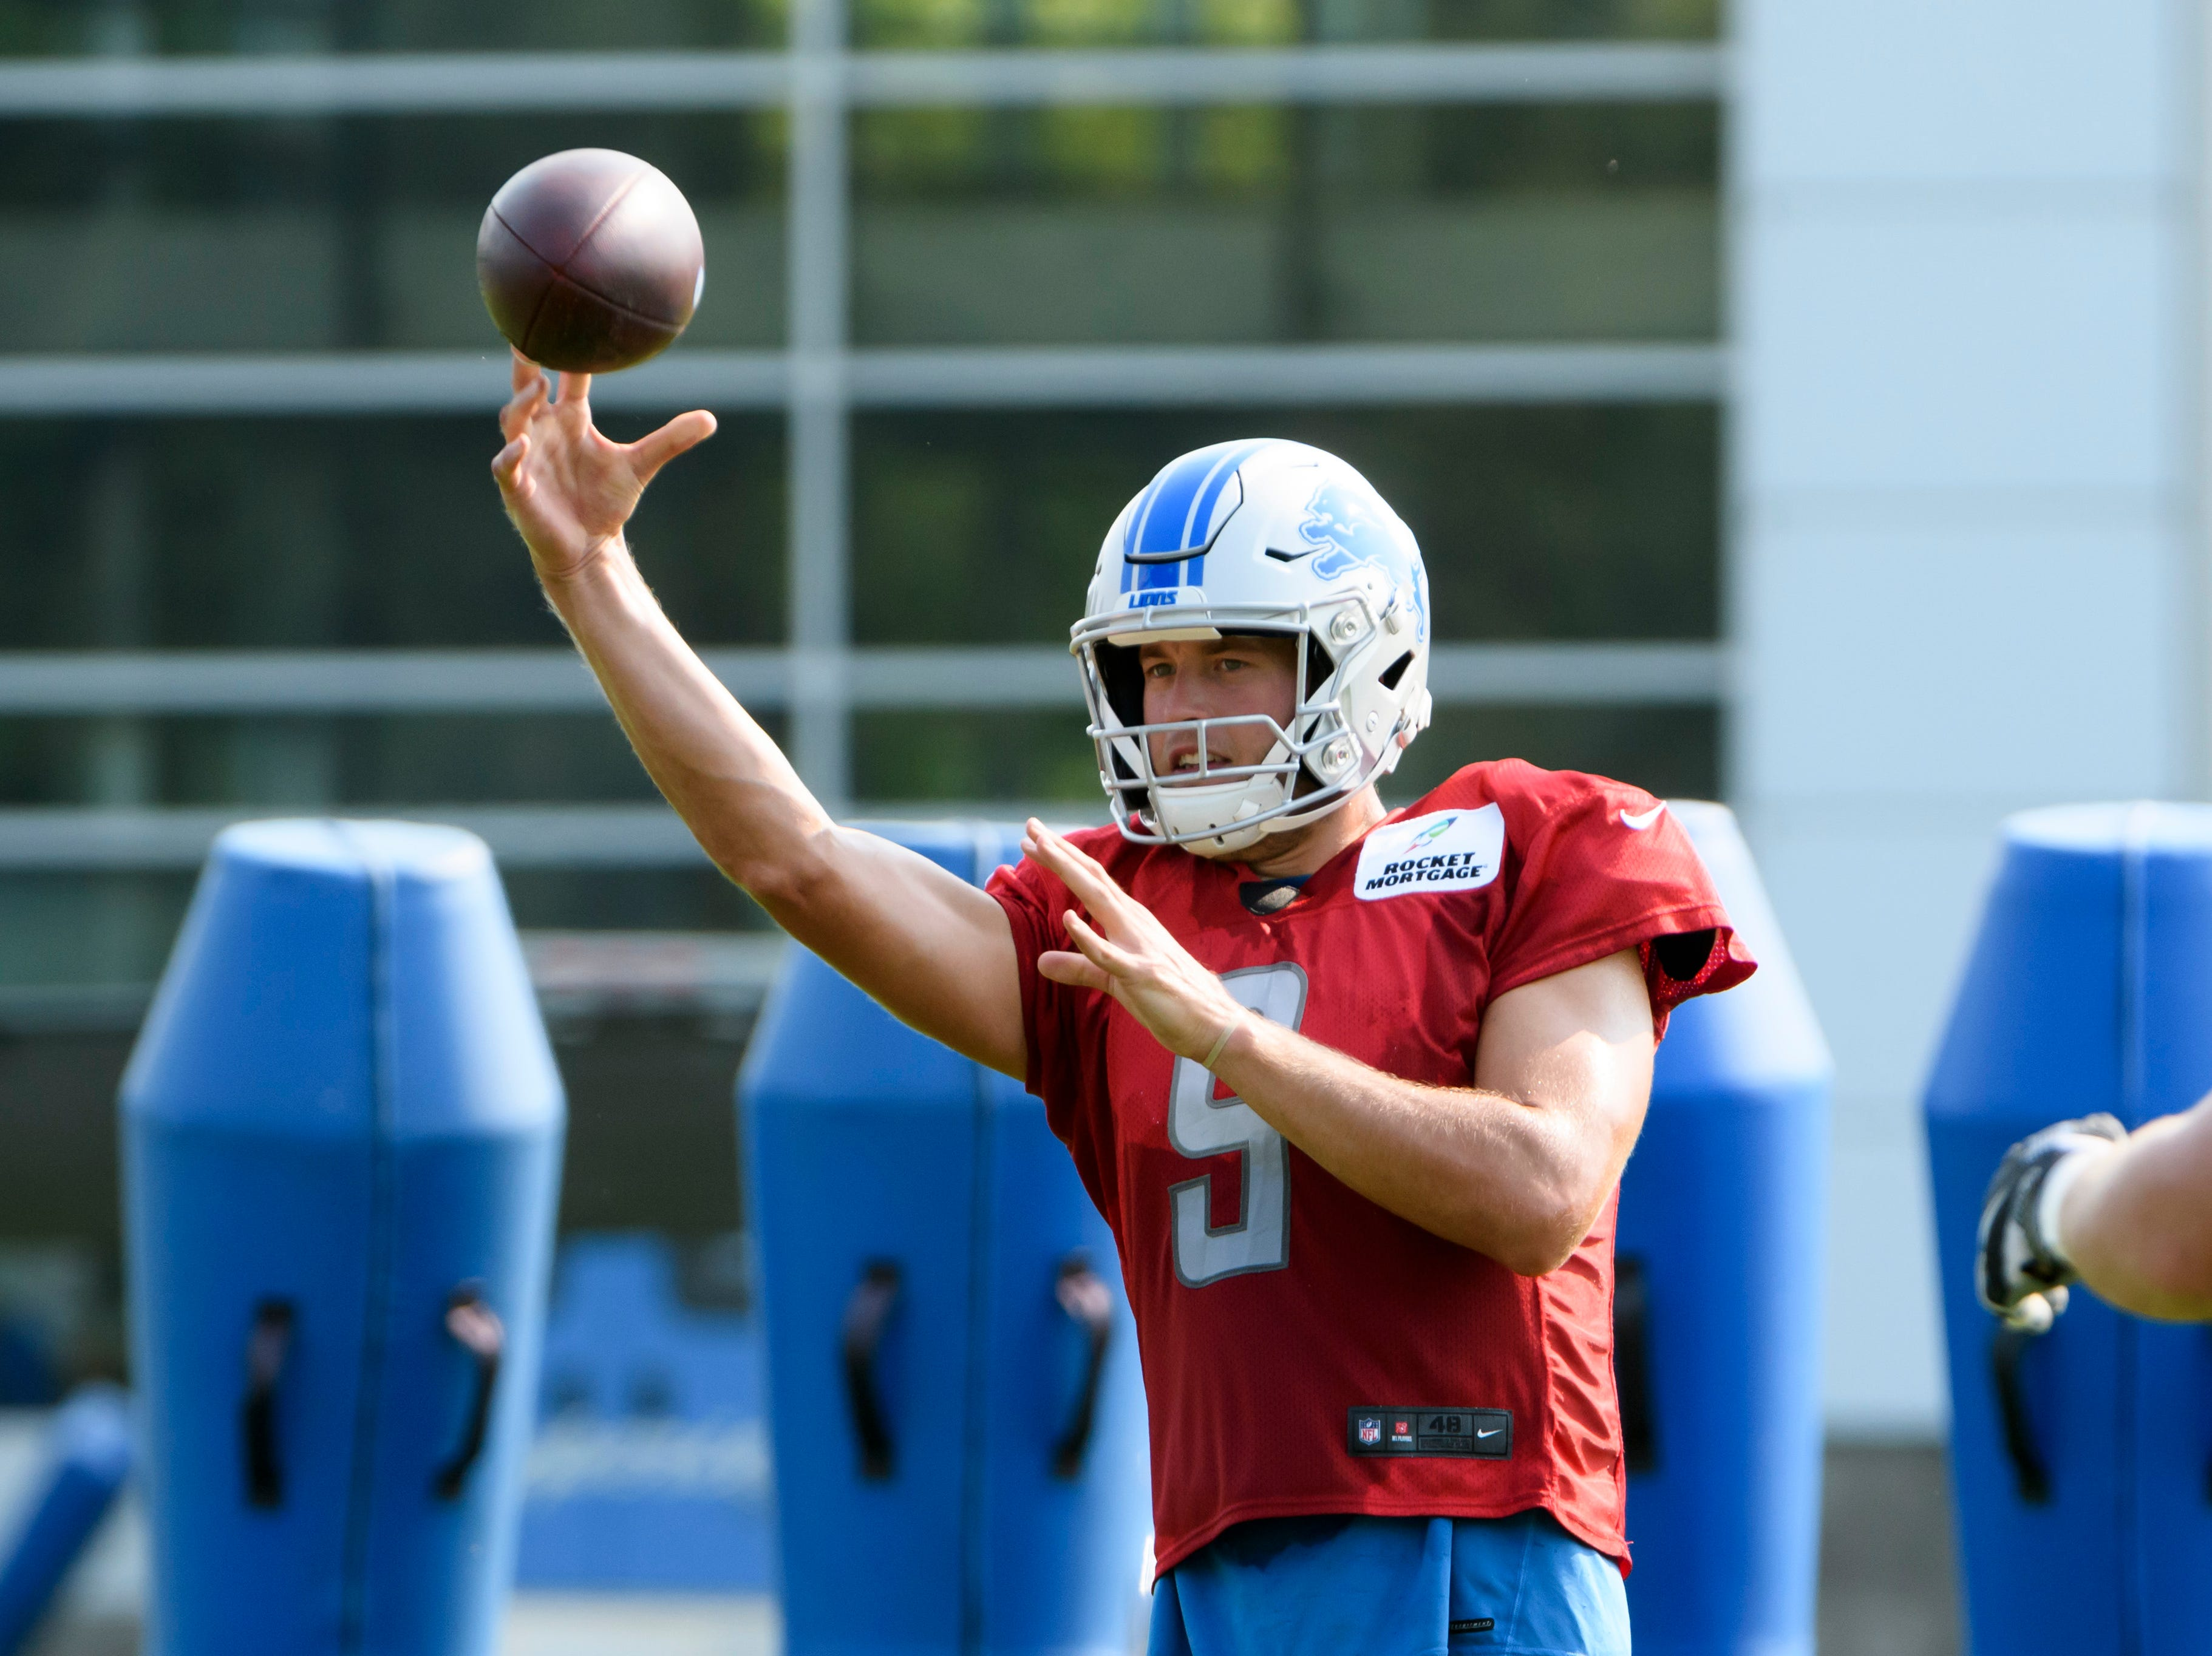 Lions quarterback Matthew Stafford throws a pass during practice.